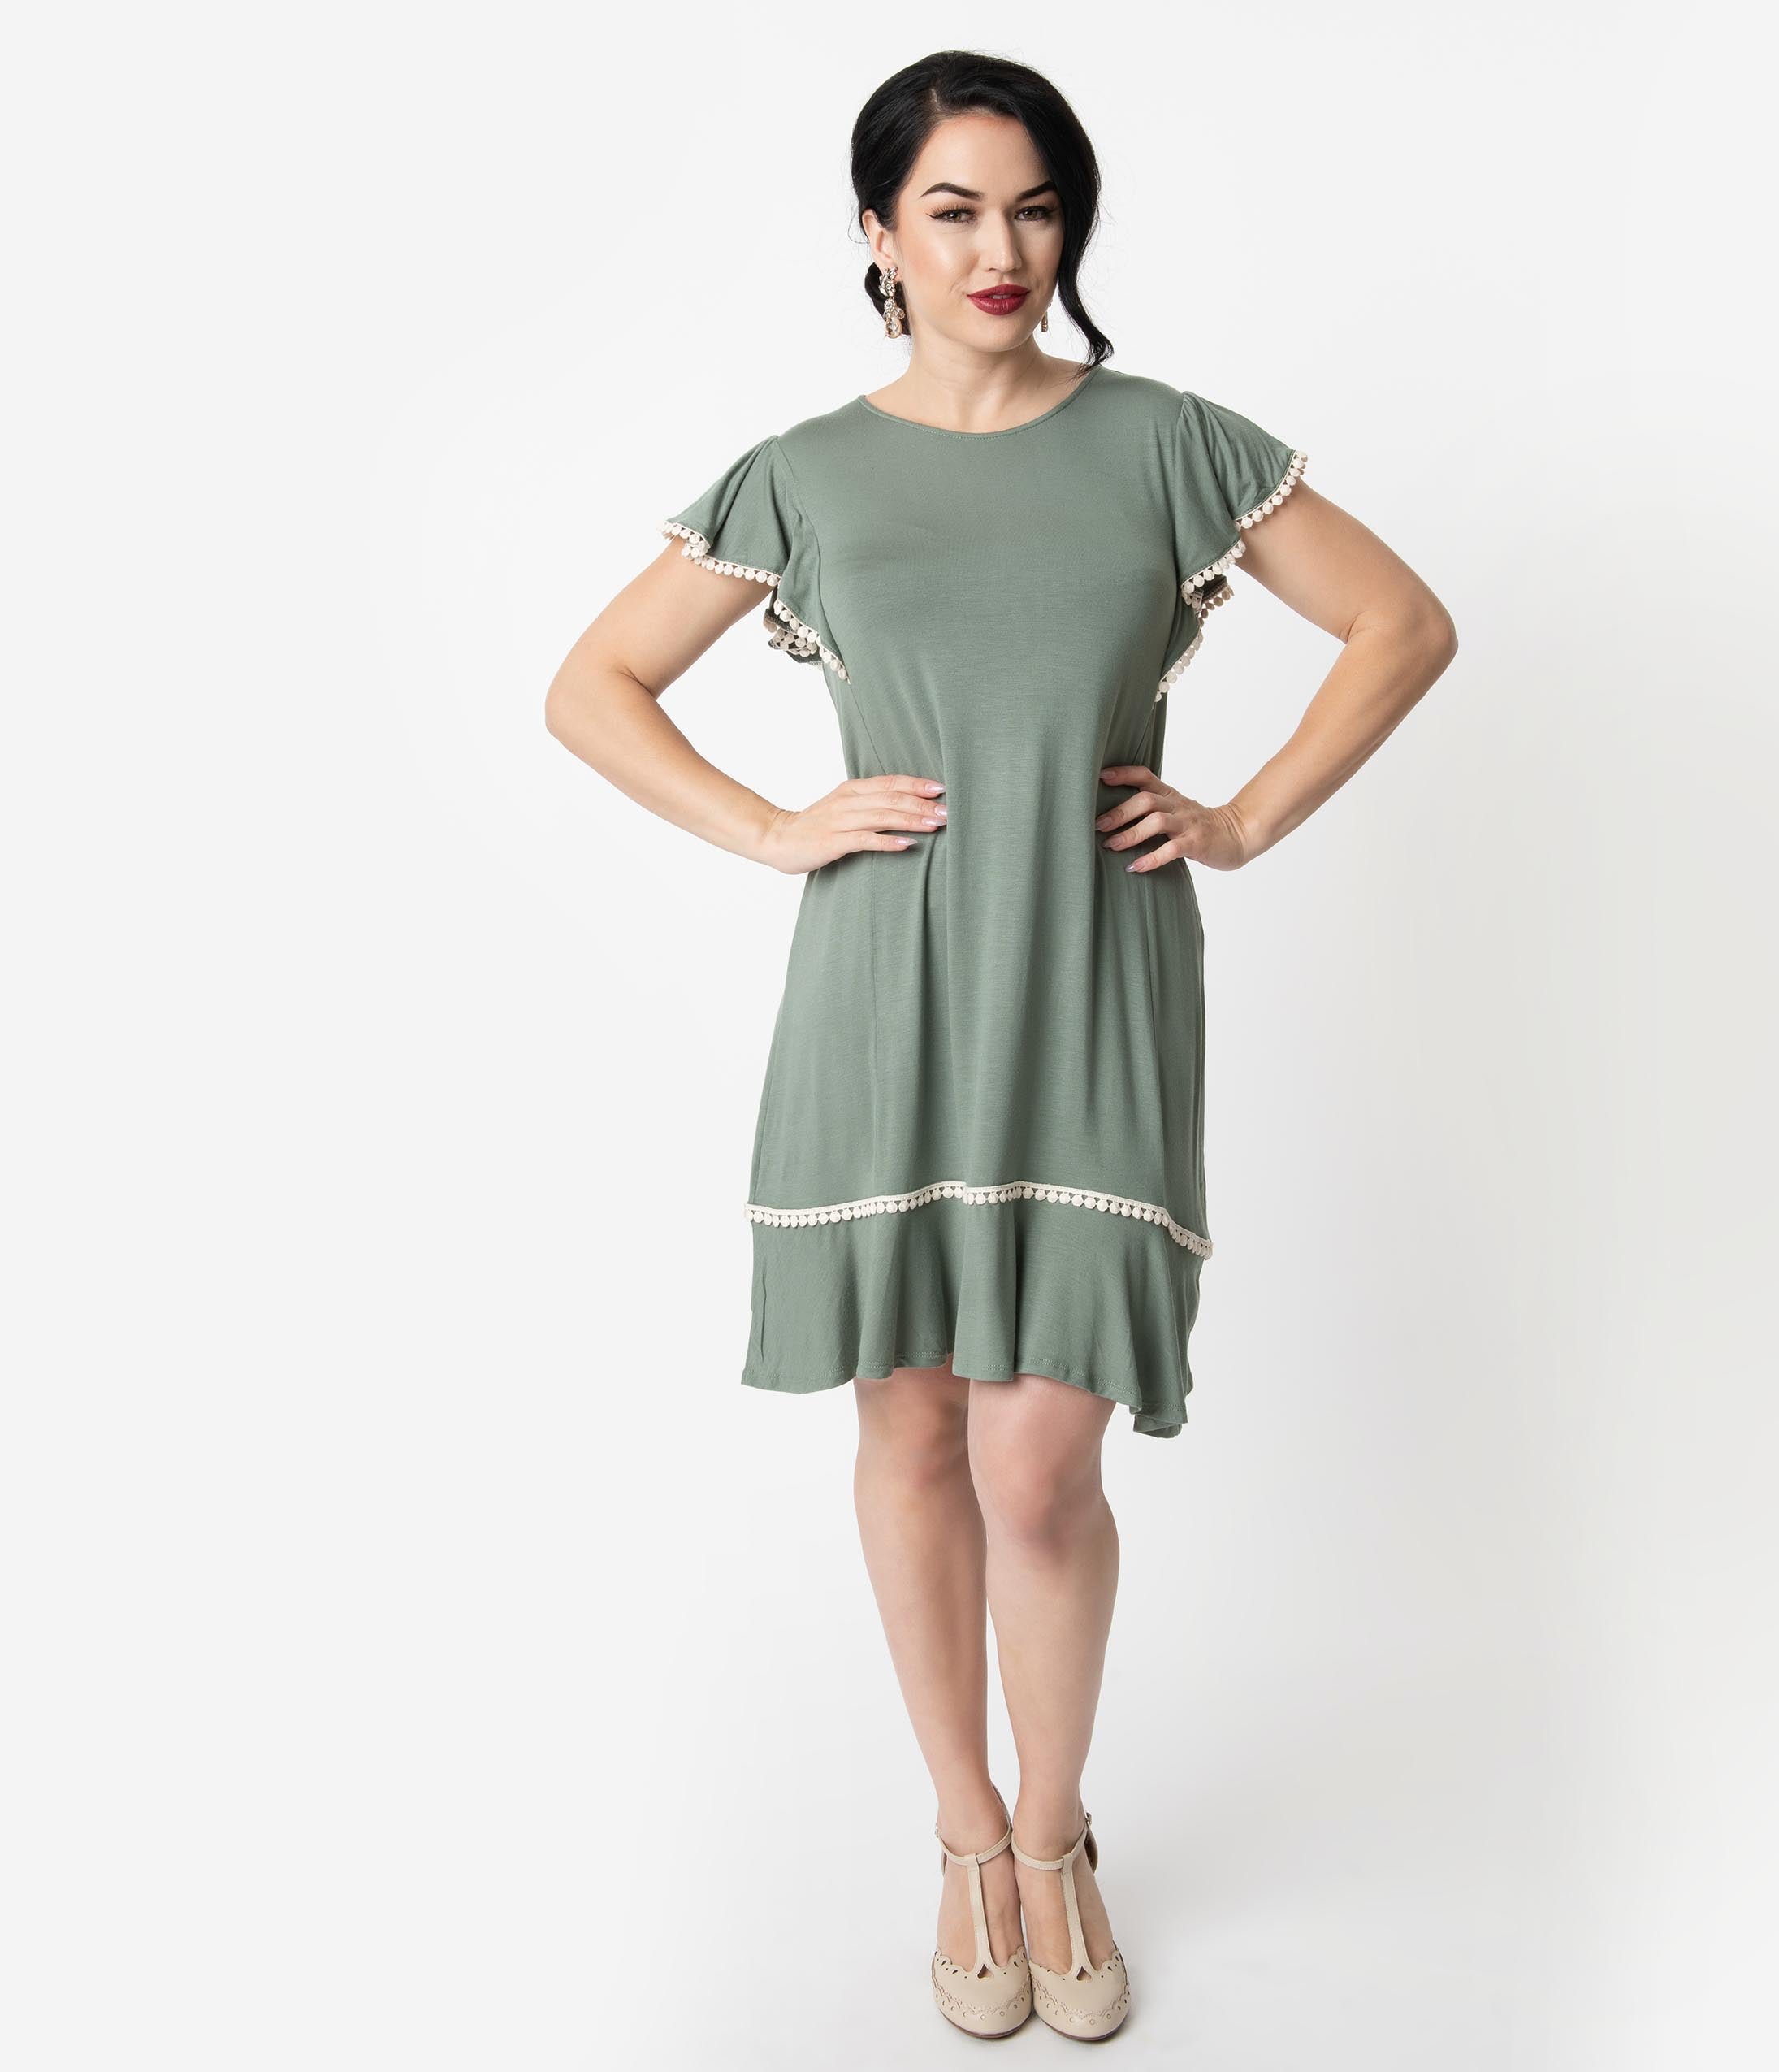 1920s Day Dresses, Tea Dresses, Mature Dresses with Sleeves 1920S Style Sage Green Butterfly Sleeve Day Dress $48.00 AT vintagedancer.com